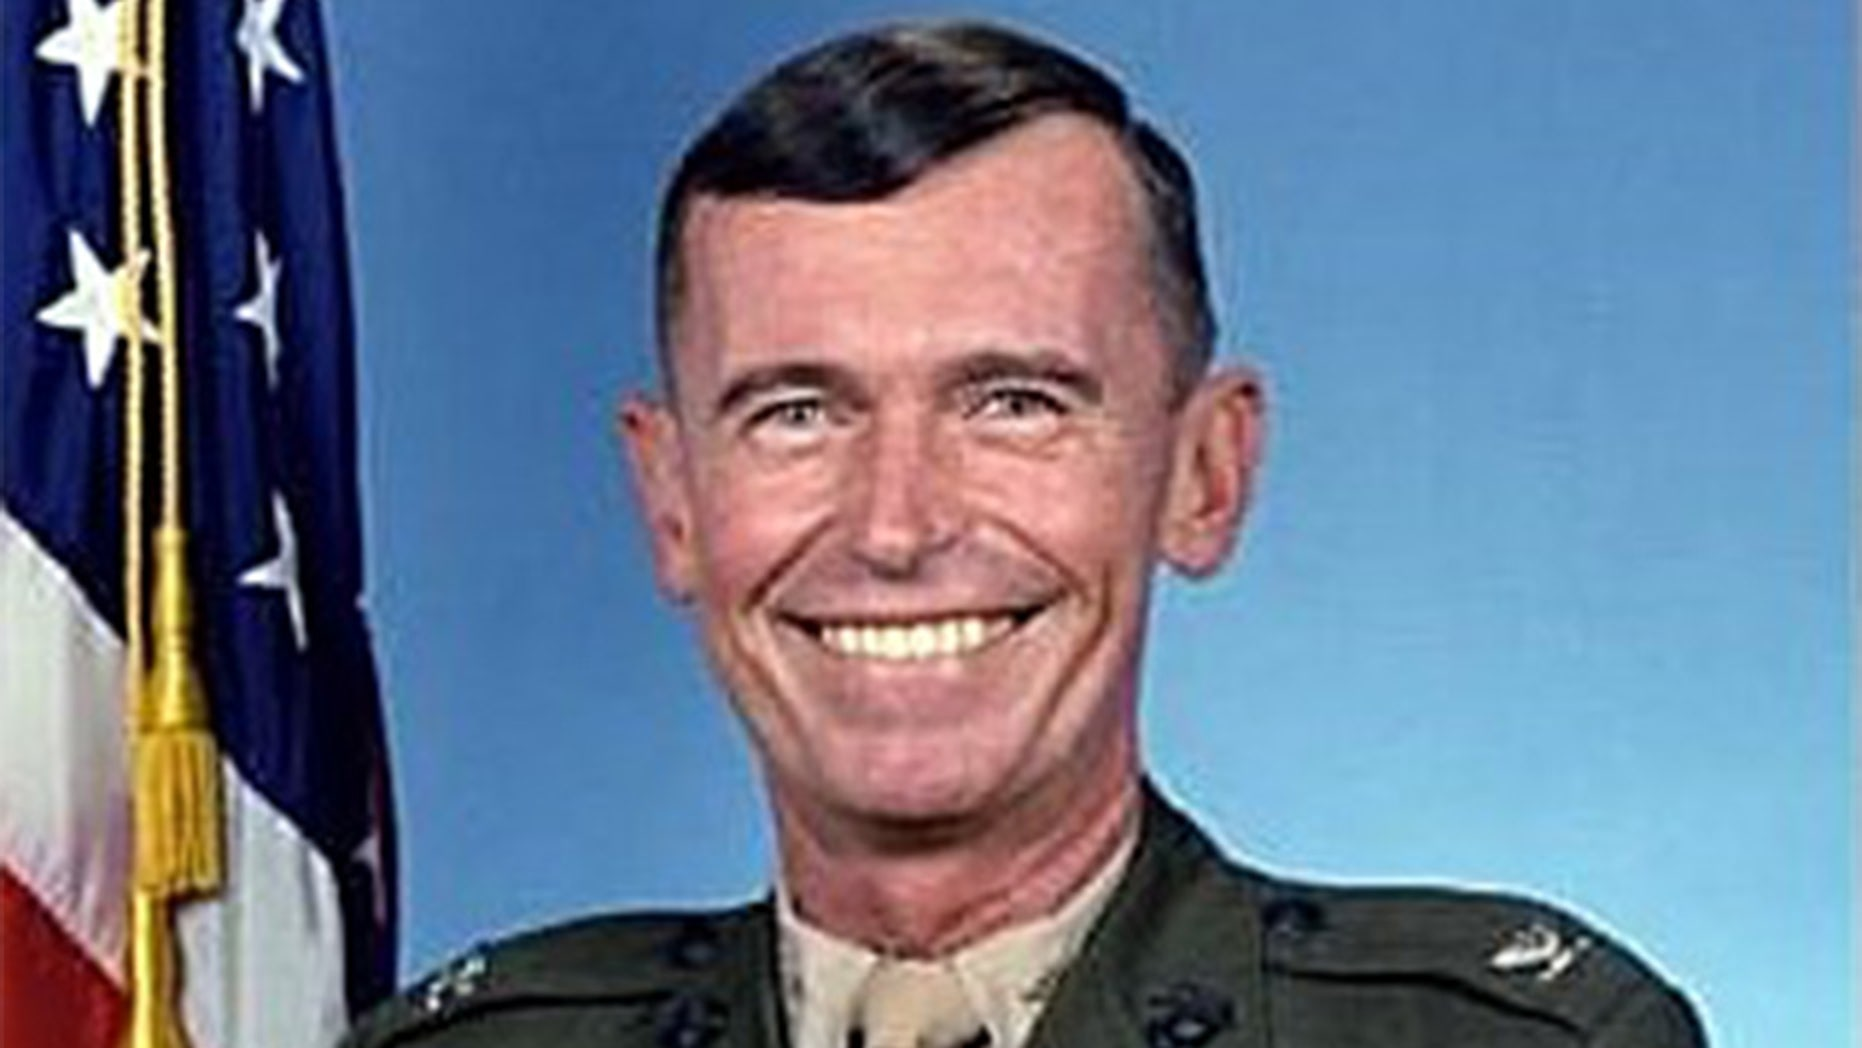 Col. Robert F. Gibson was no fan of Northern Virginia drivers, his family says.